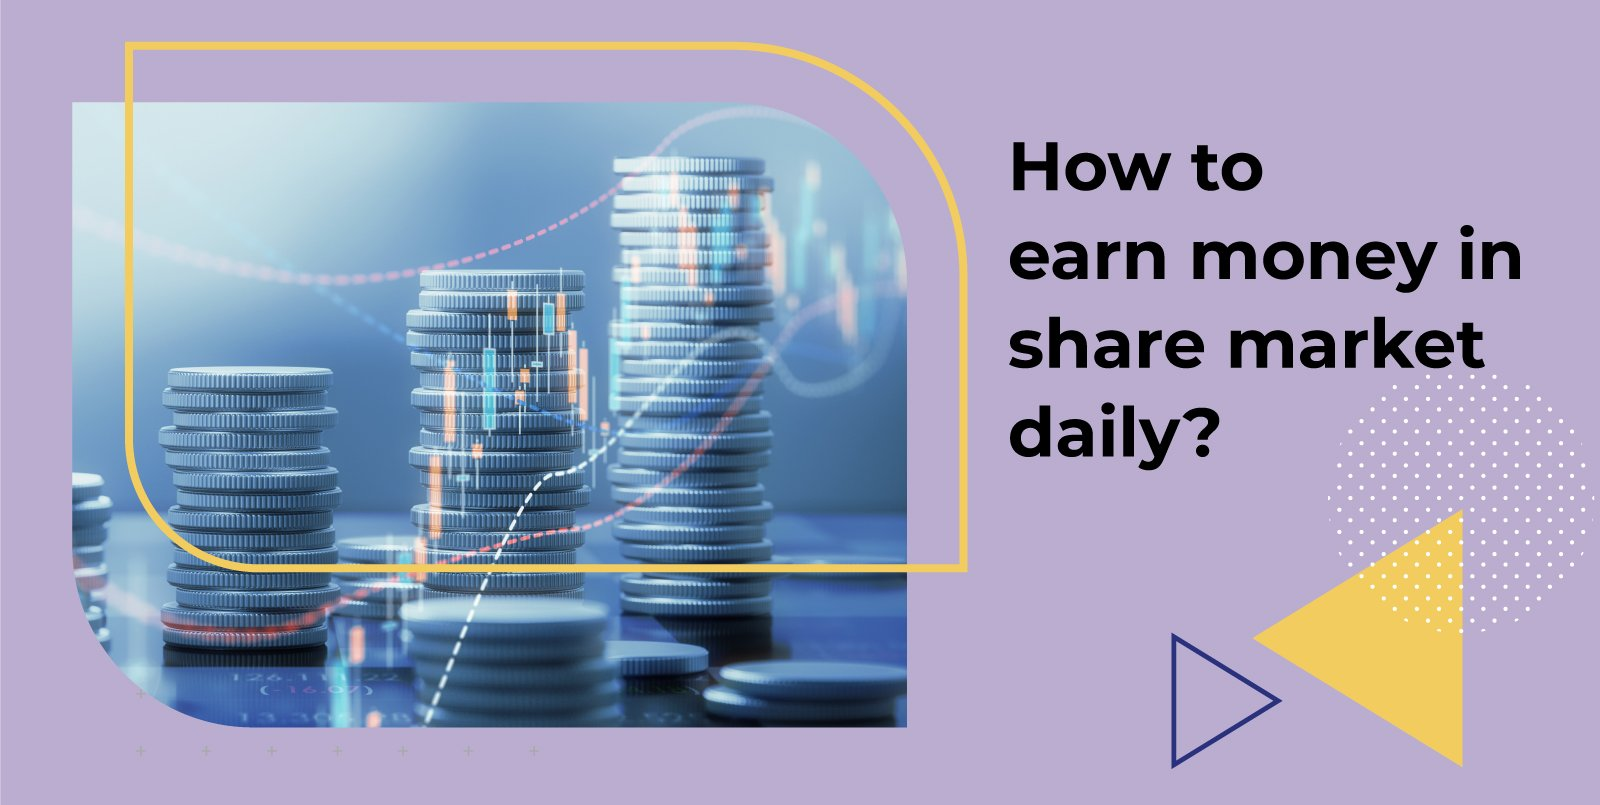 How to earn money in the share market daily